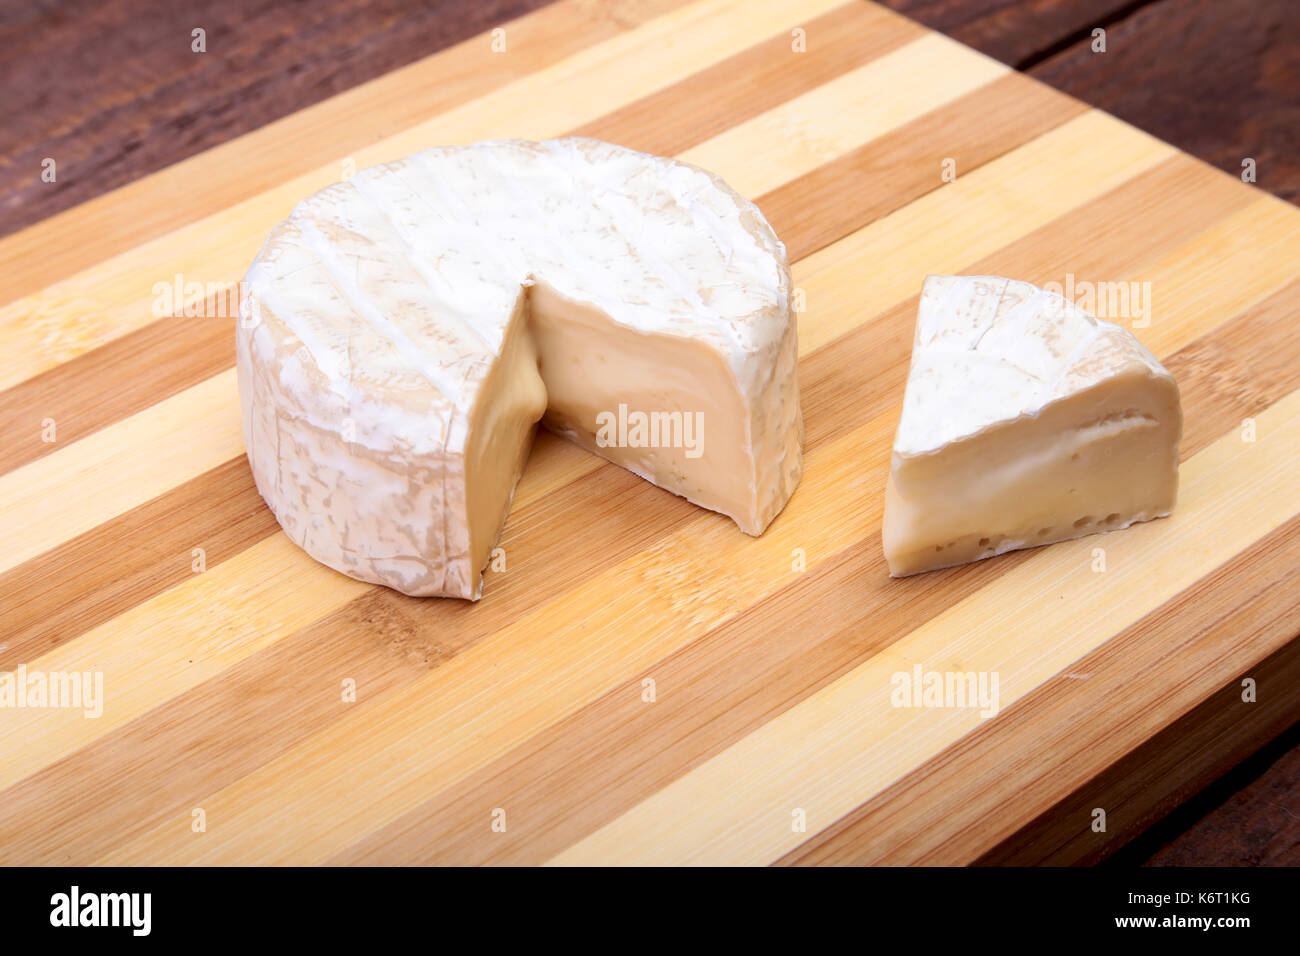 Cheese with white mold. Camembert or brie type on wood table. Healthy breakfast. - Stock Image